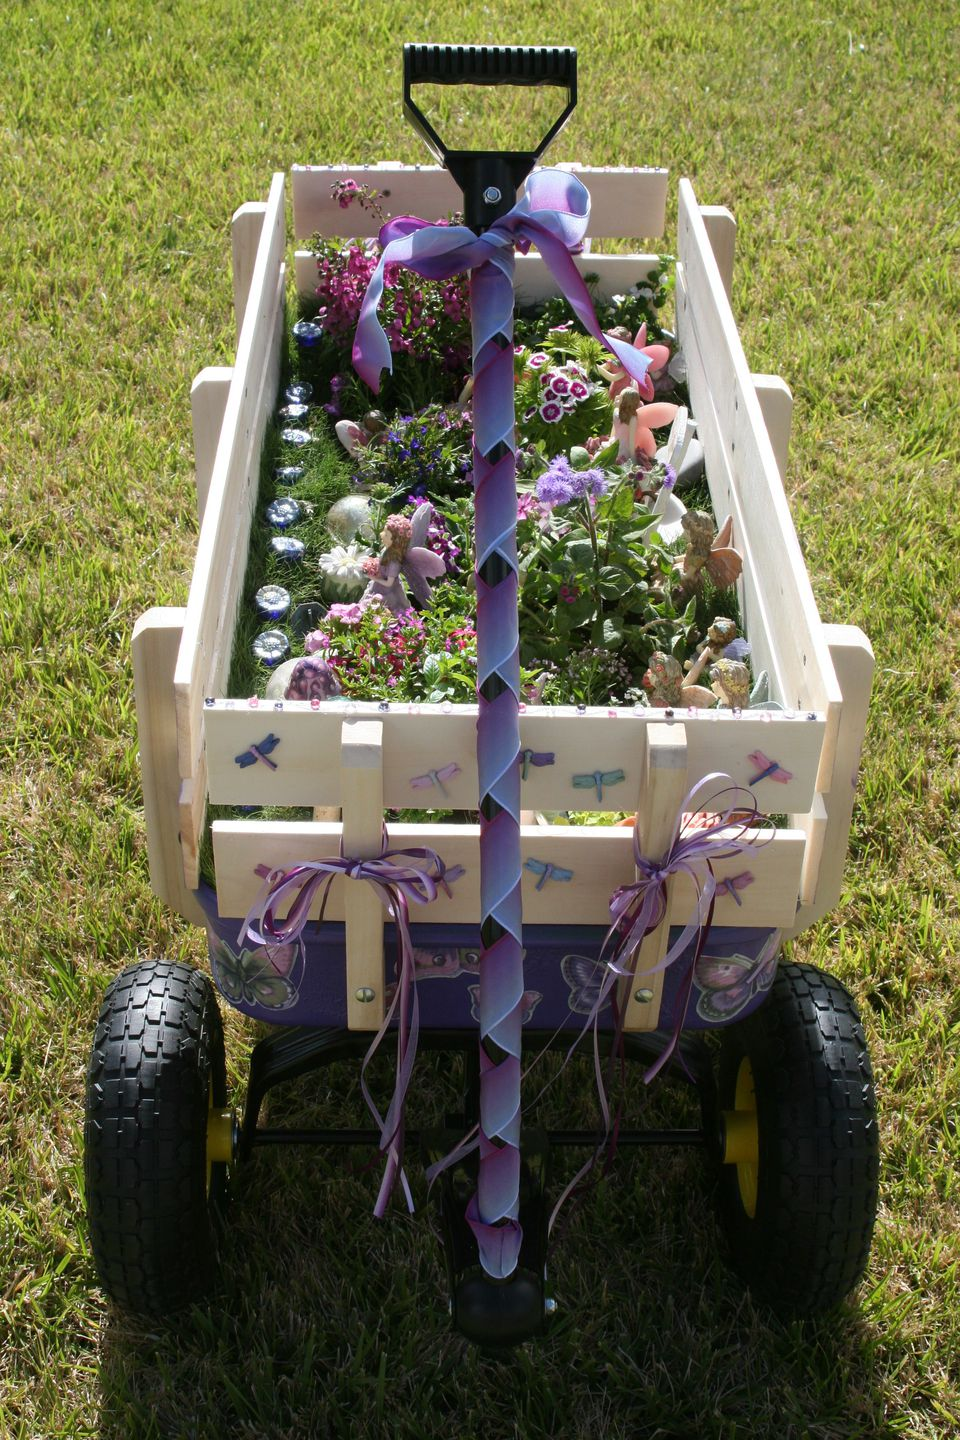 fairy garden ideas: Fairy garden on wheels